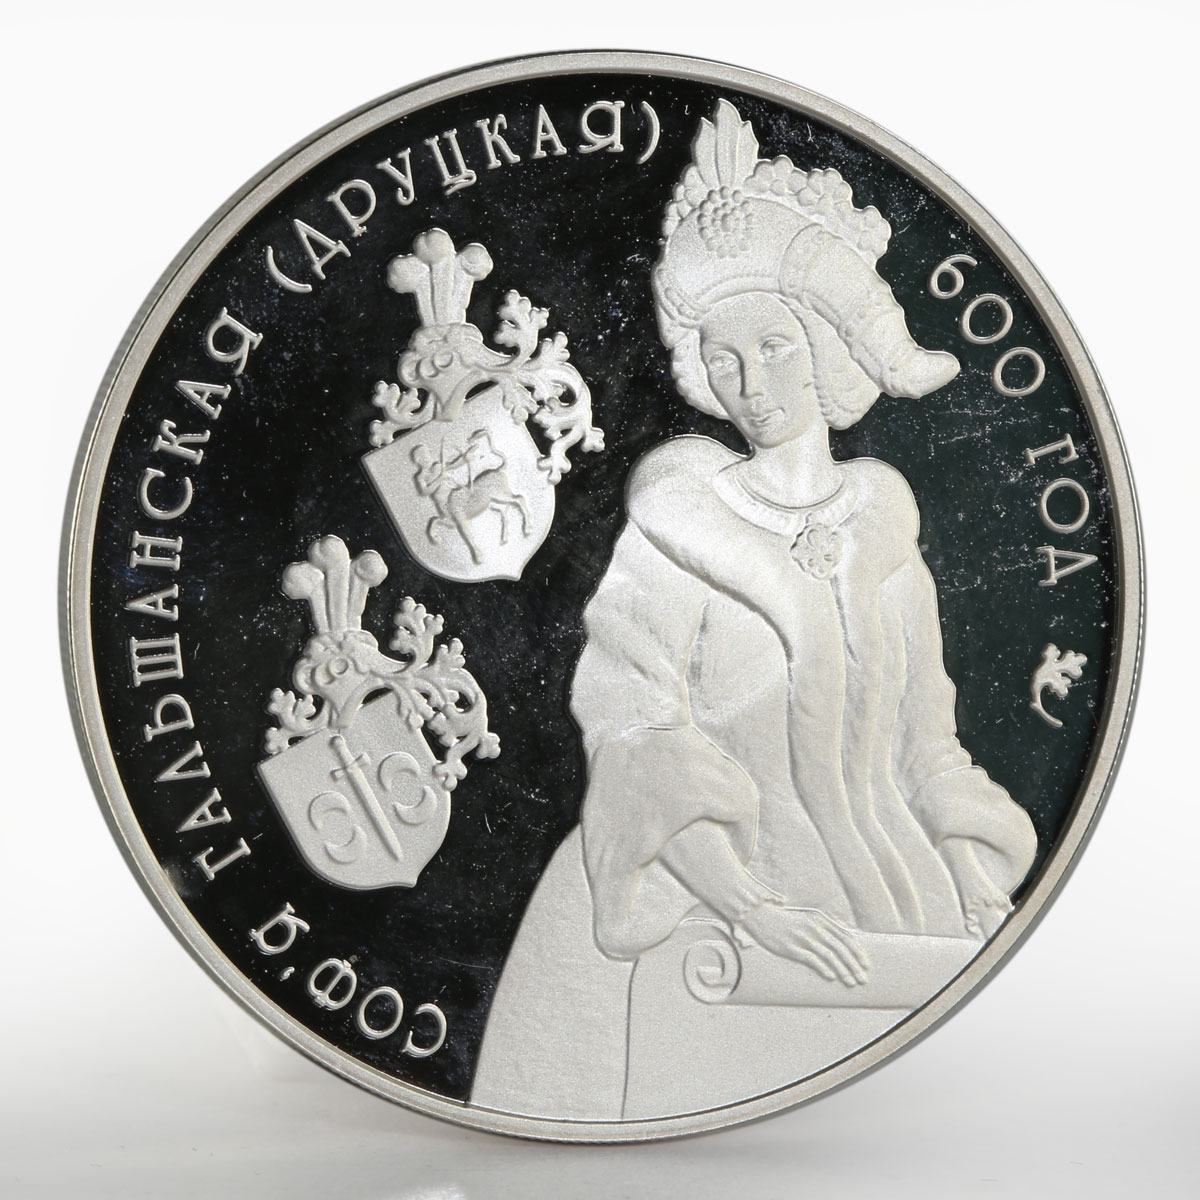 Belarus 20 rubles 600th Anniversary of Sophia of Galshany proof silver coin 2006